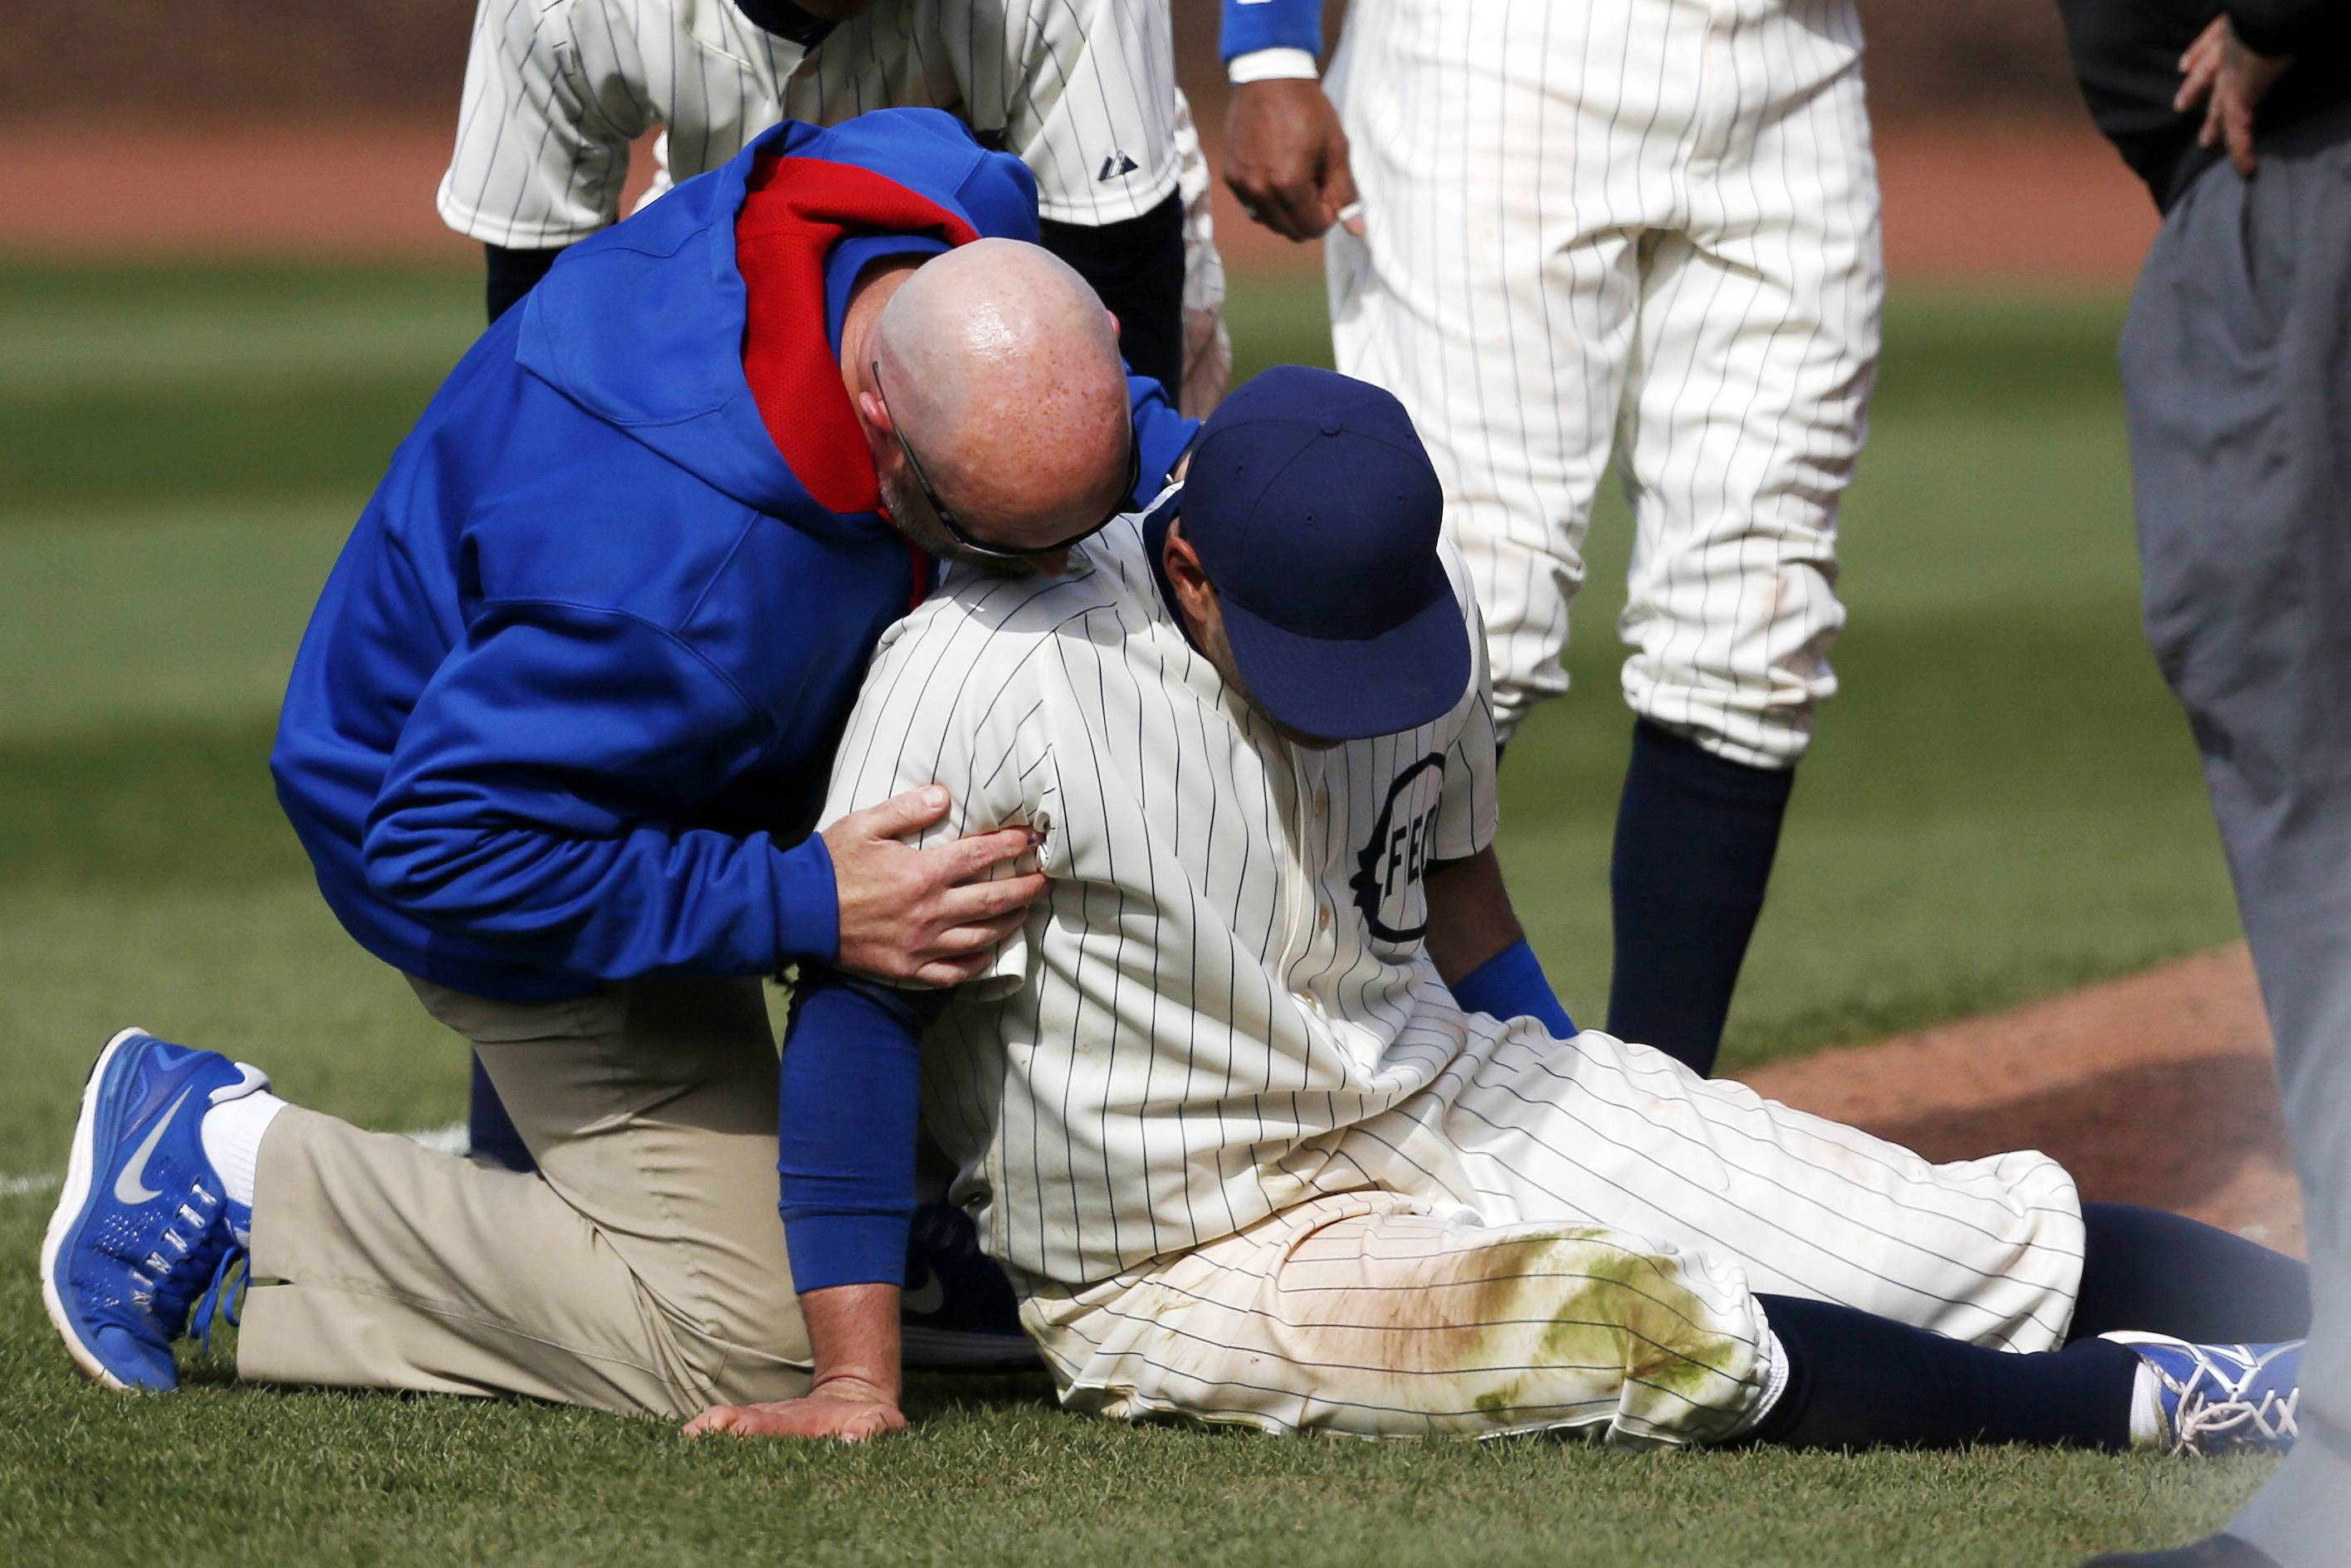 Chicago Cubs right fielder Justin Ruggiano is tended to during the ninth inning of a baseball game against the Arizona Diamondbacks at Wrigley Field in Chicago on Wednesday, April 23, 2014.